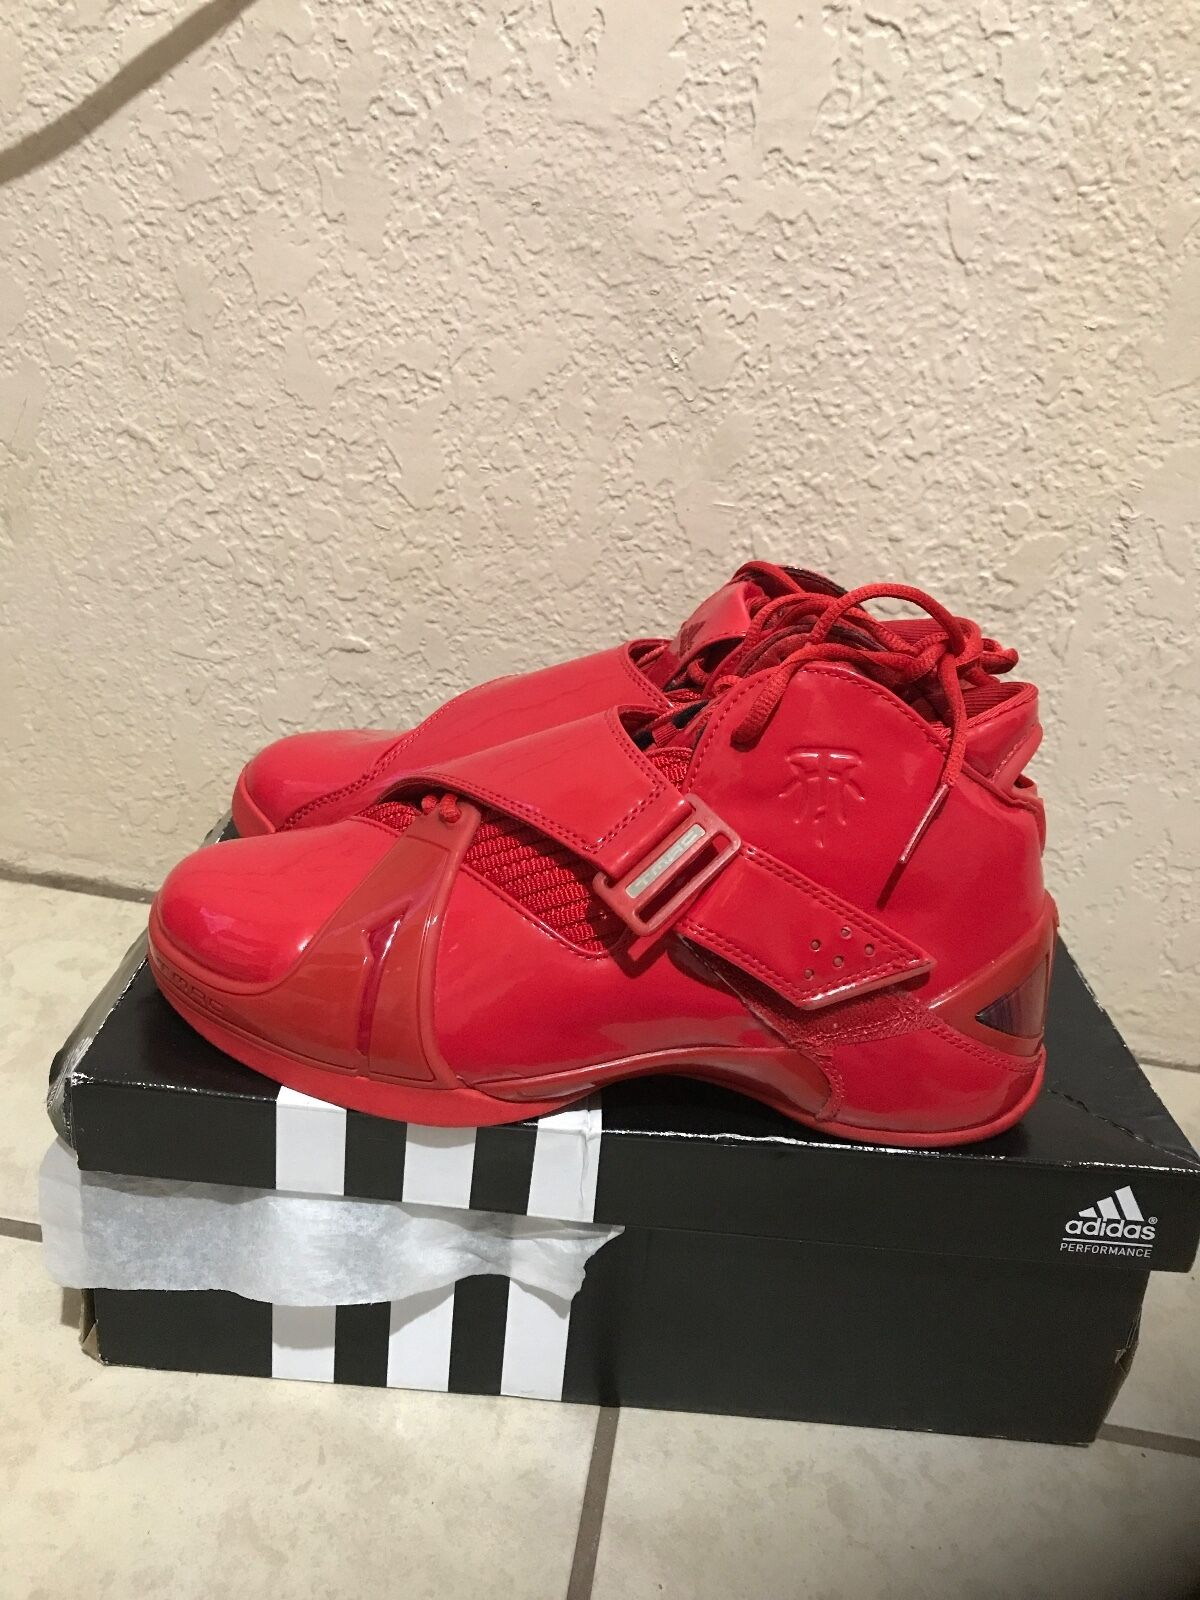 DS RARE China release T ONLY ADIDAS 5 V T release MAC Tmac MCGRADY Red/Red SZ 9 men b526e6